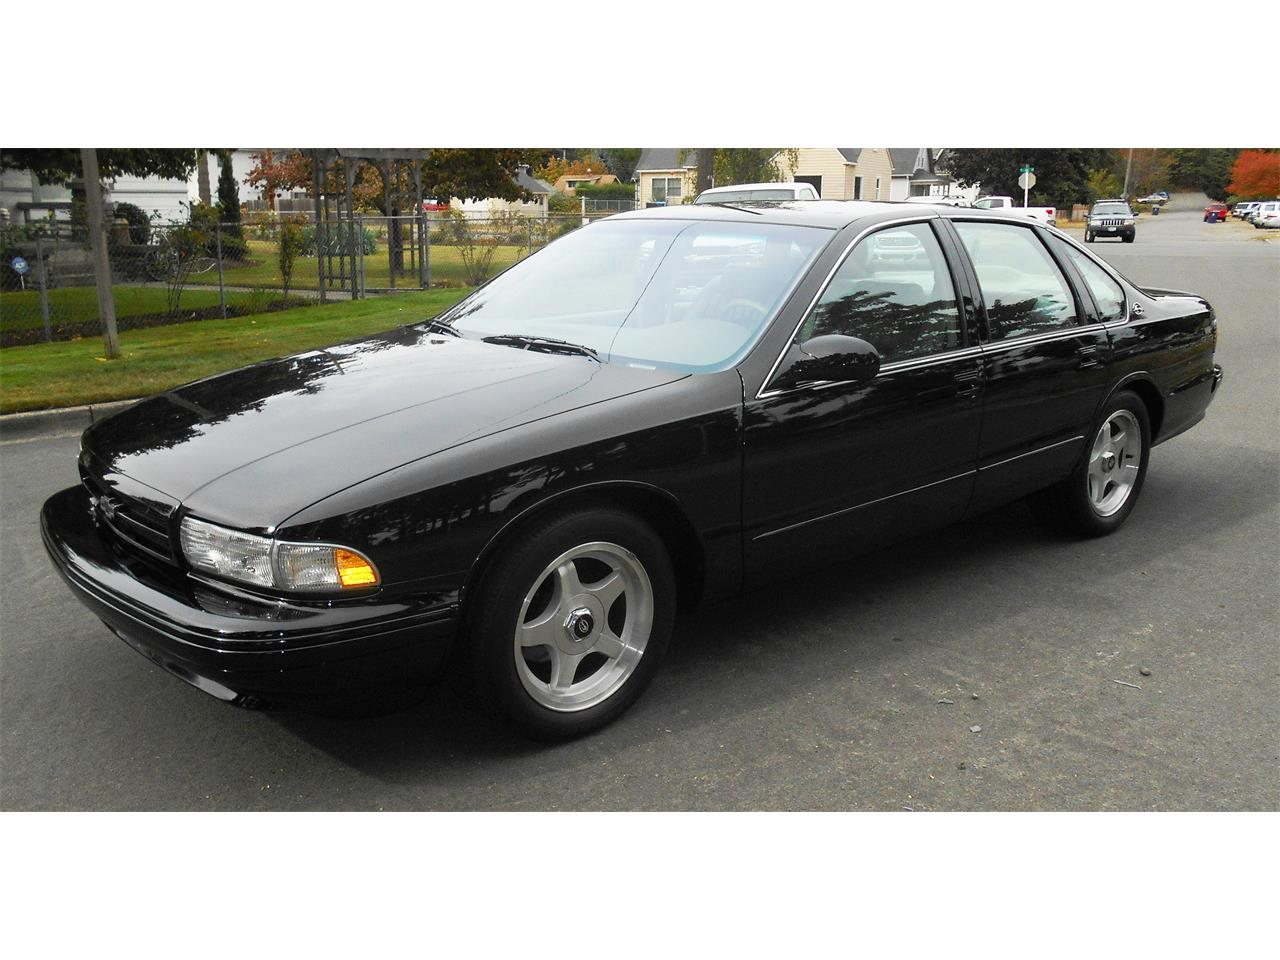 Large Picture of 1996 Impala SS located in Washington - $27,950.00 Offered by Austin's Pro Max - JCOP